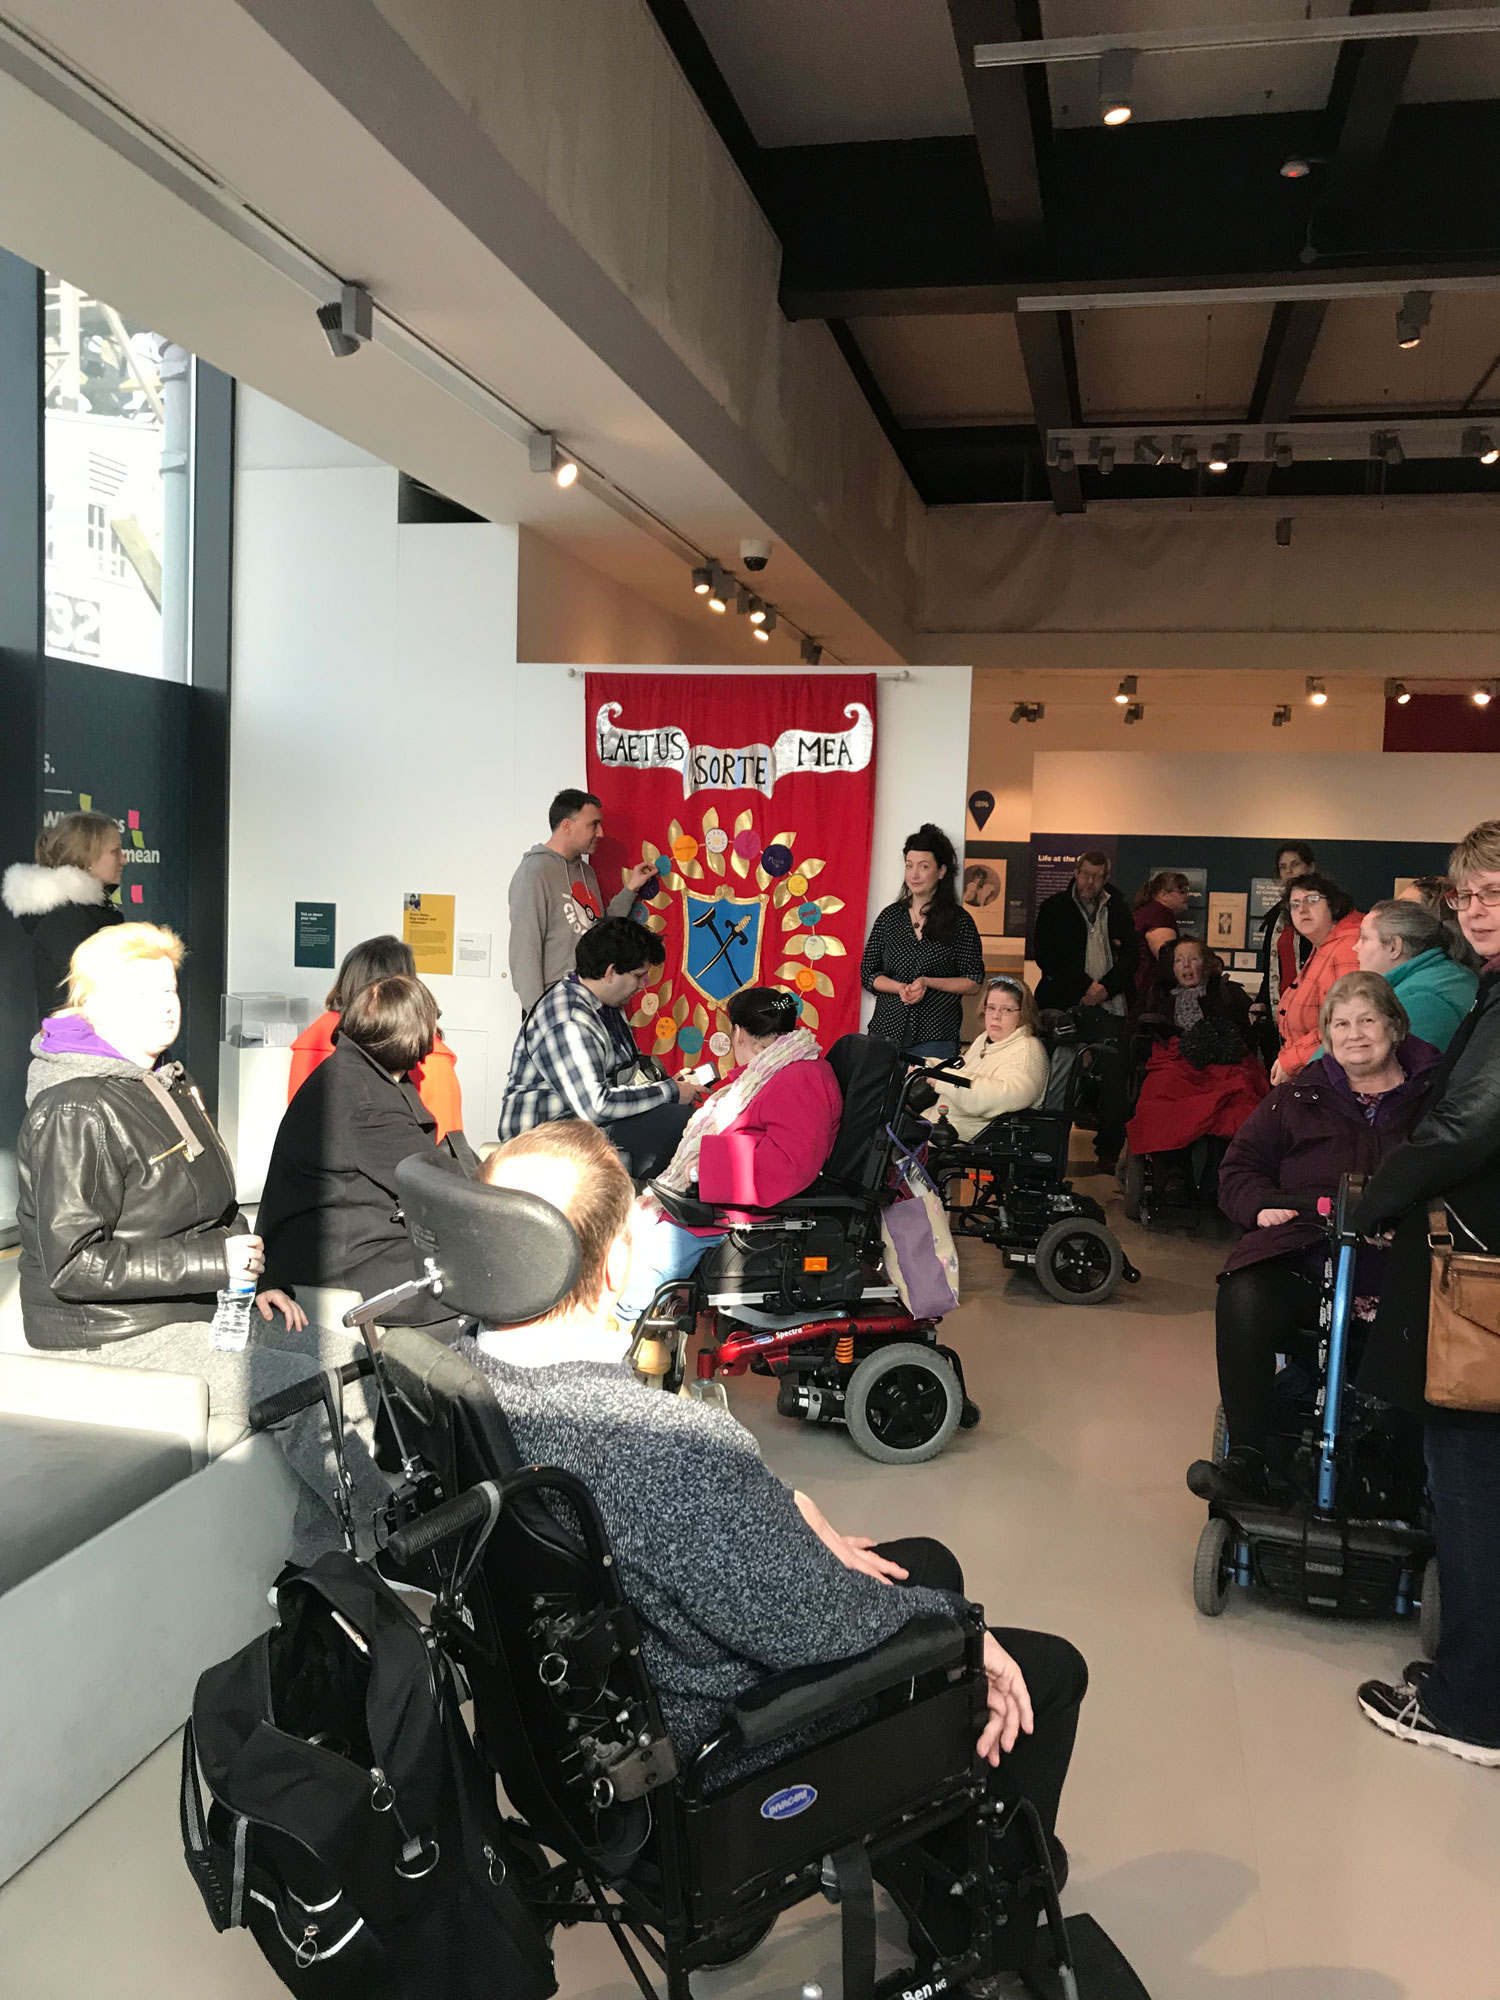 Group of people from Wecil sit in front of the banner made for the Mshed exhibition.